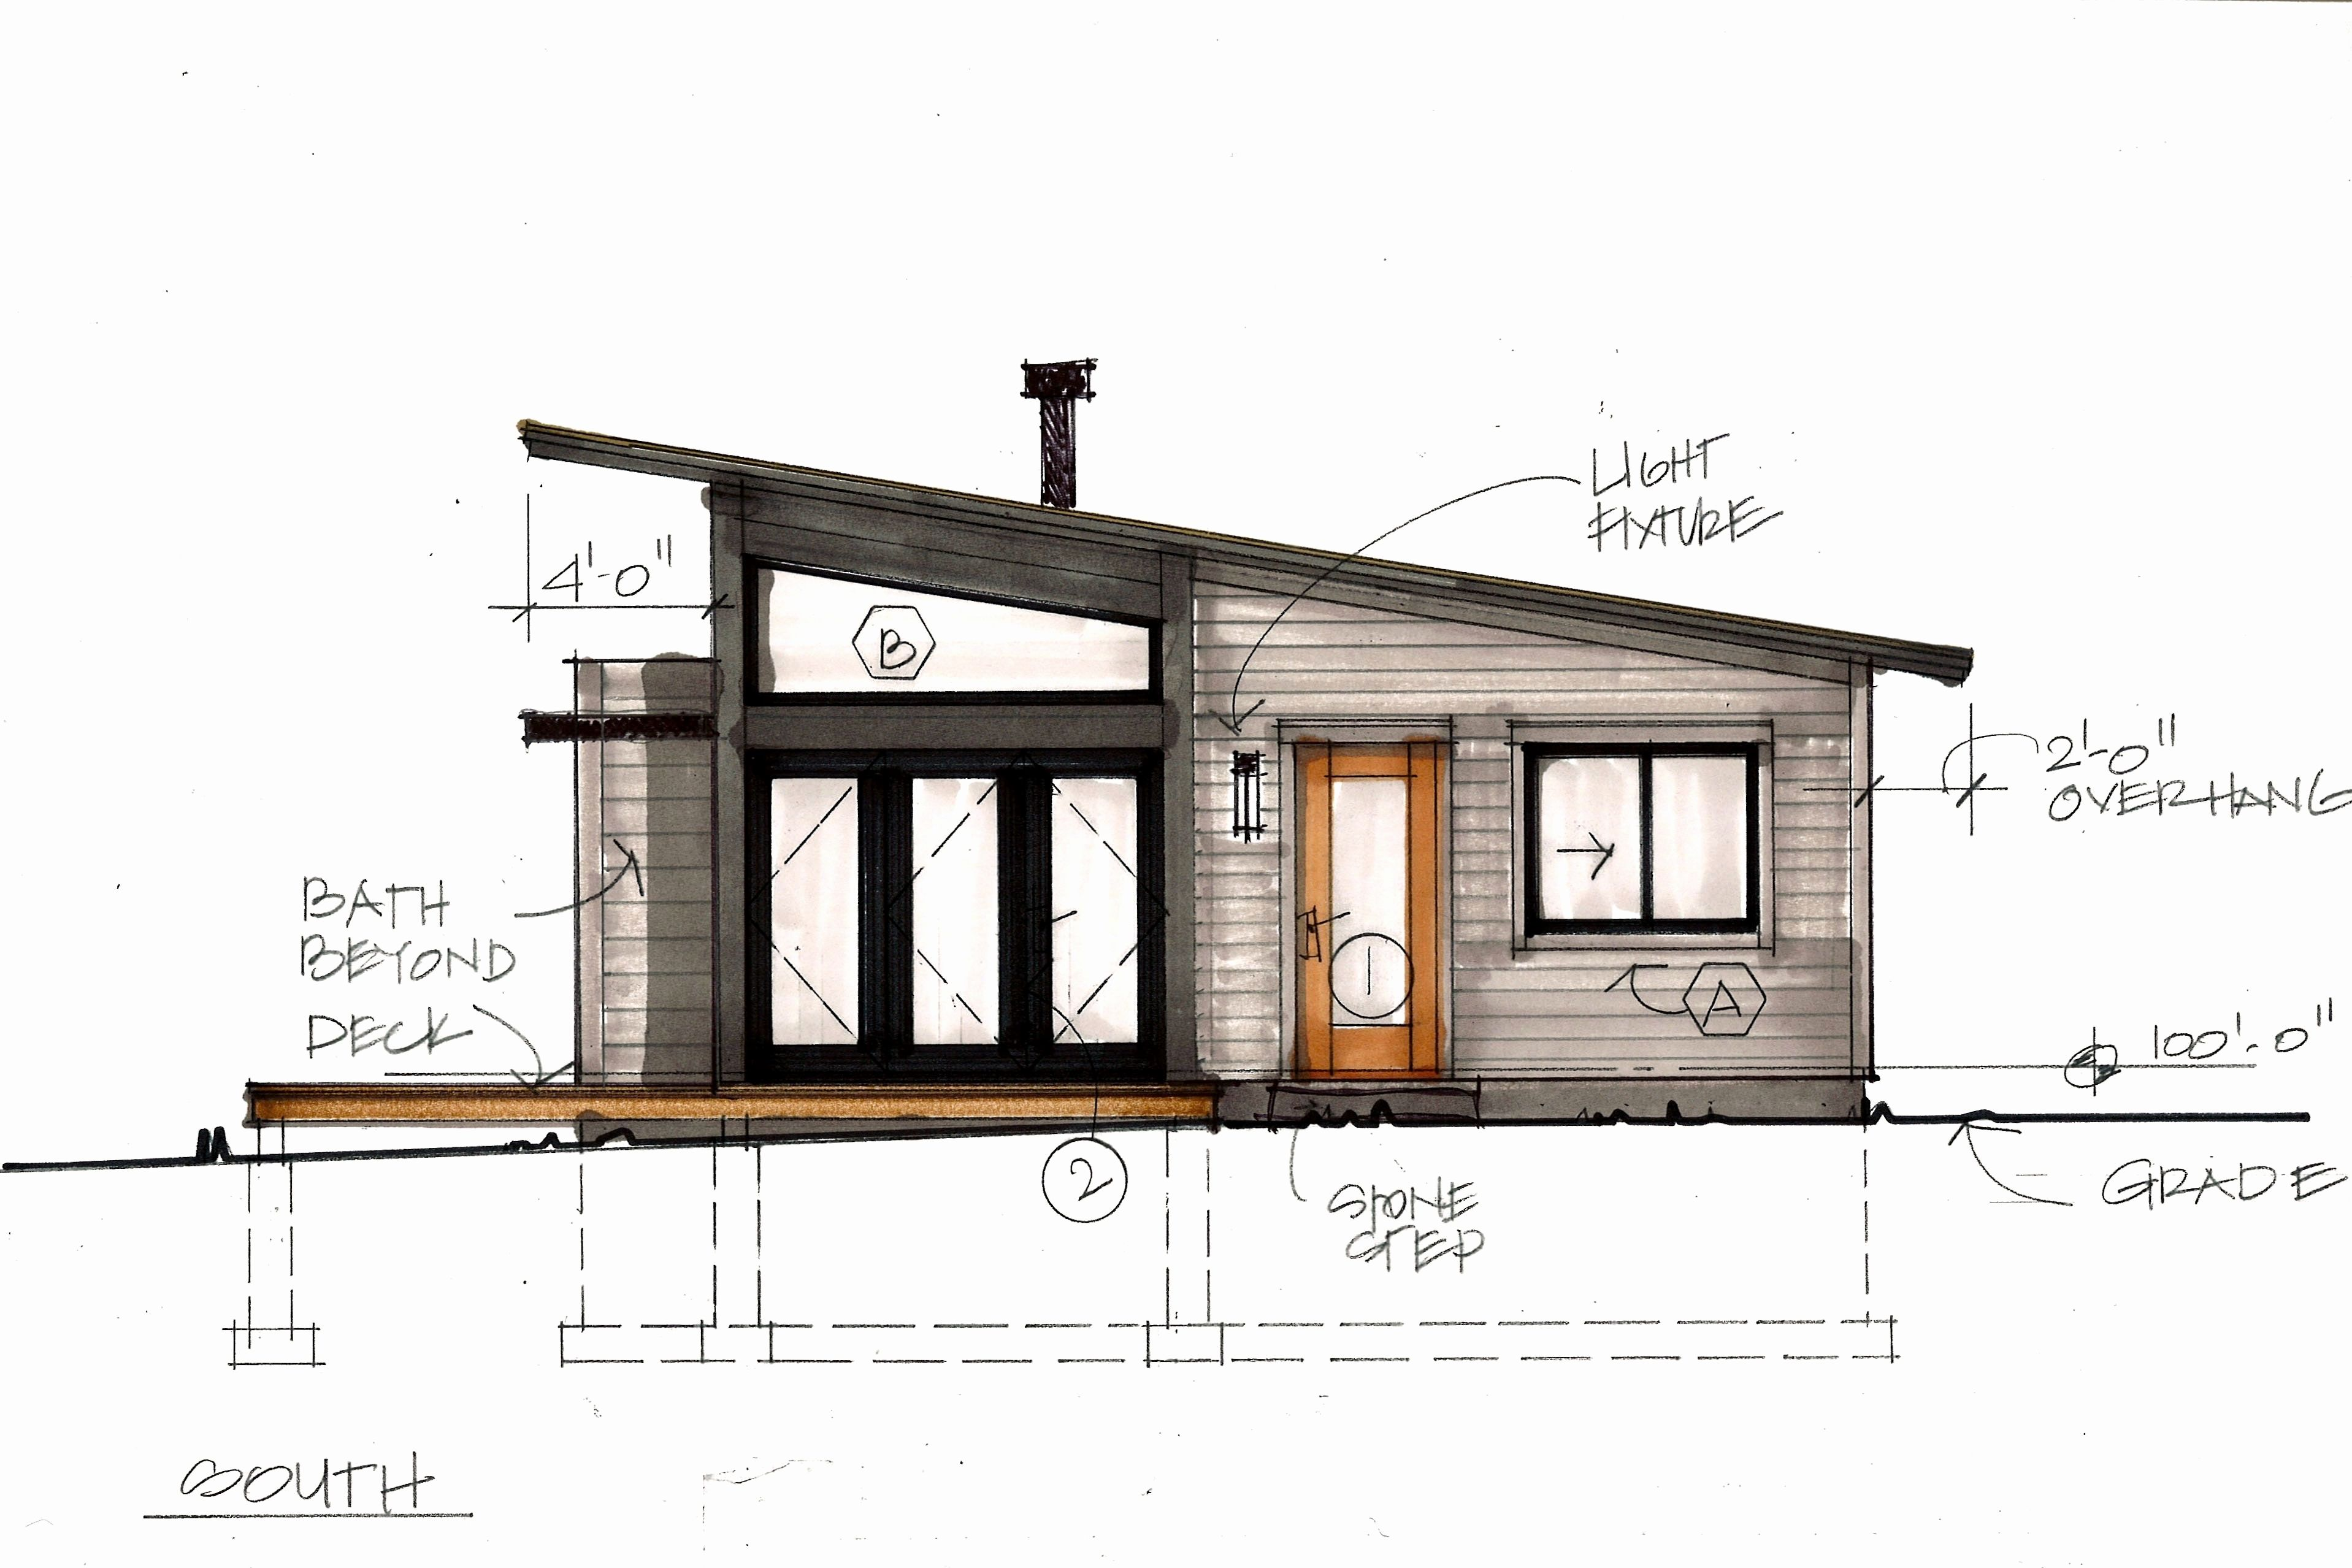 Image result for mountain modern tiny home   Small modern ... on modern mountain home plans, luxury mountain home plans, rustic mountain home plans, mountain home doors, mountain home landscaping, mountain home plans with basements, rocky mountain home plans, colorado home plans, mountain home lighting, luxury ranch home plans, mountain home plans unique, mountain home interiors, 4-bedroom mountain home plans, mountain home design, mountain home plans hillside, mountain home plans with a view, log home plans, small mountain home plans, mountain home furniture,